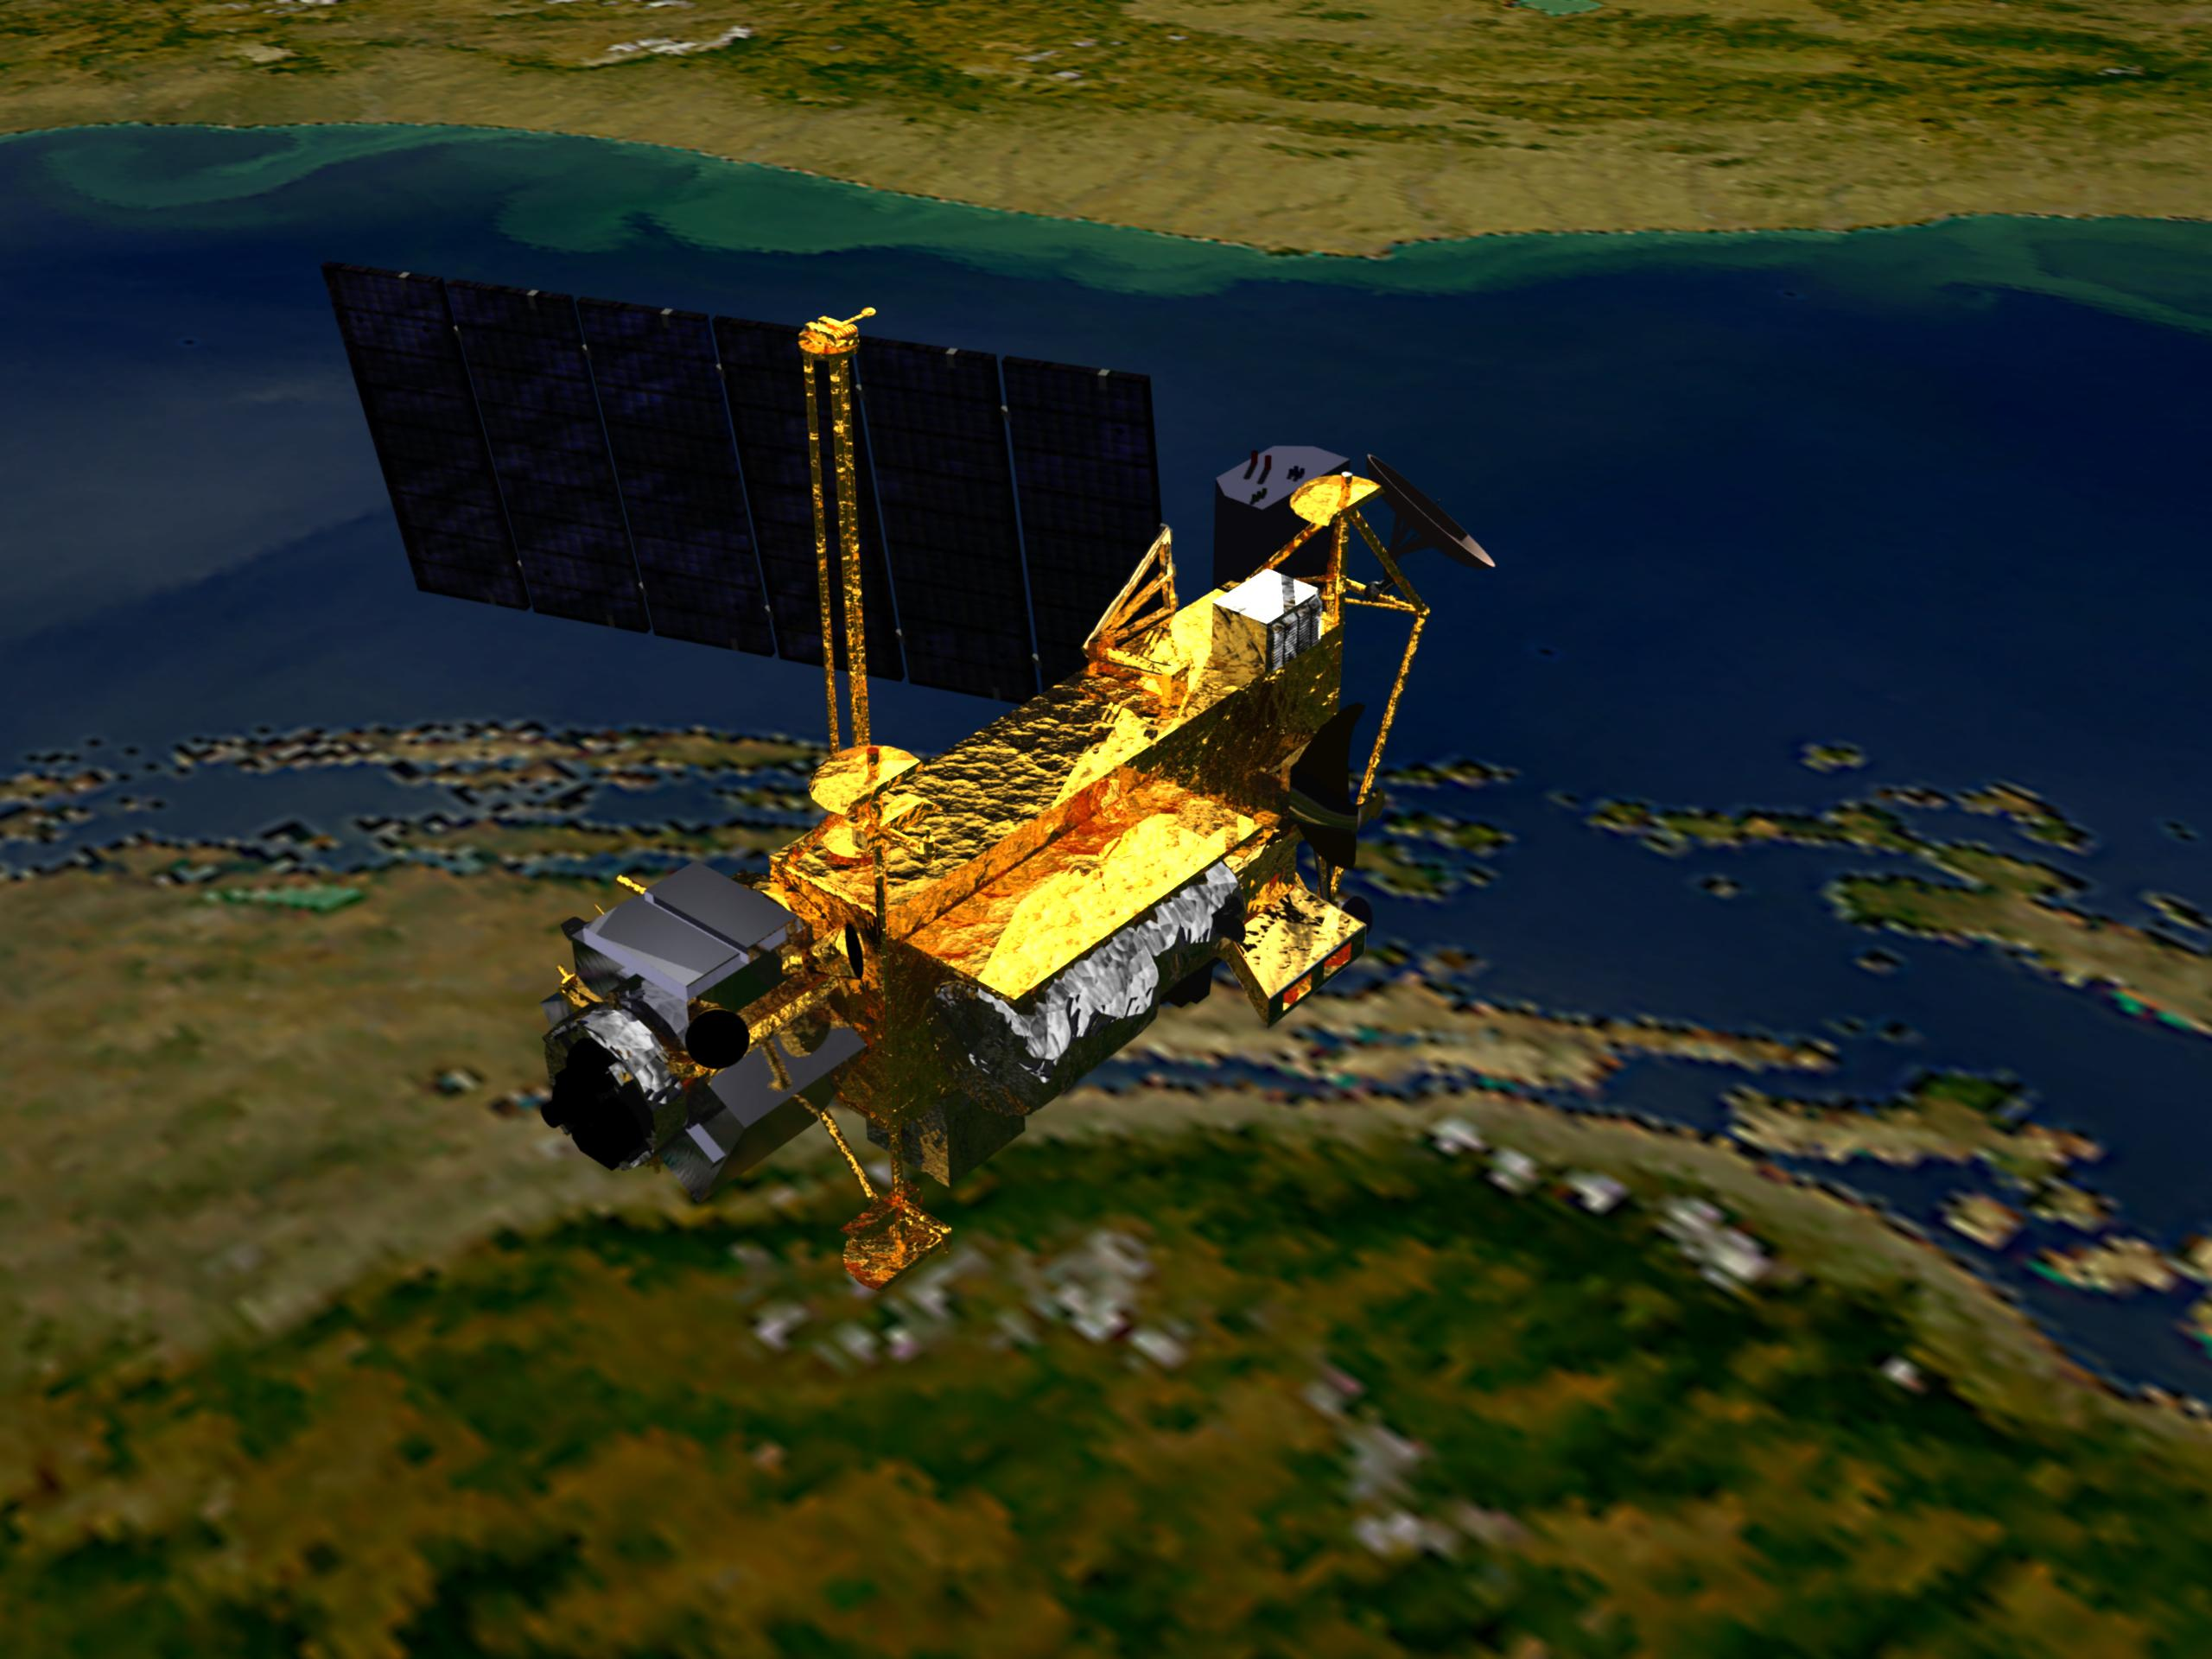 Complete Coverage of NASA's Falling Satellite UARS